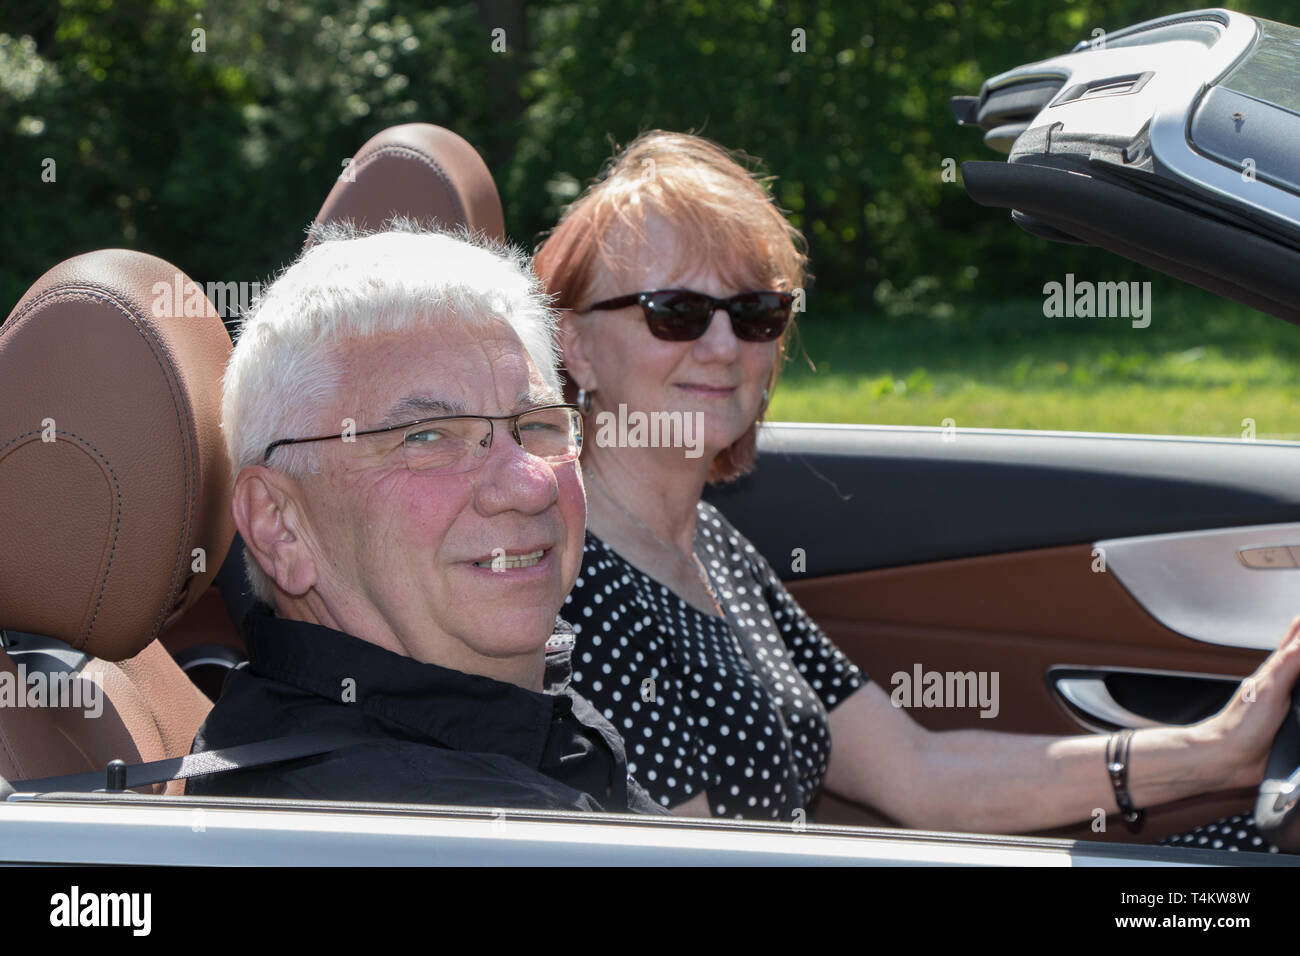 Happy older couple drives with a luxury convertible car on a sunny day - Stock Image